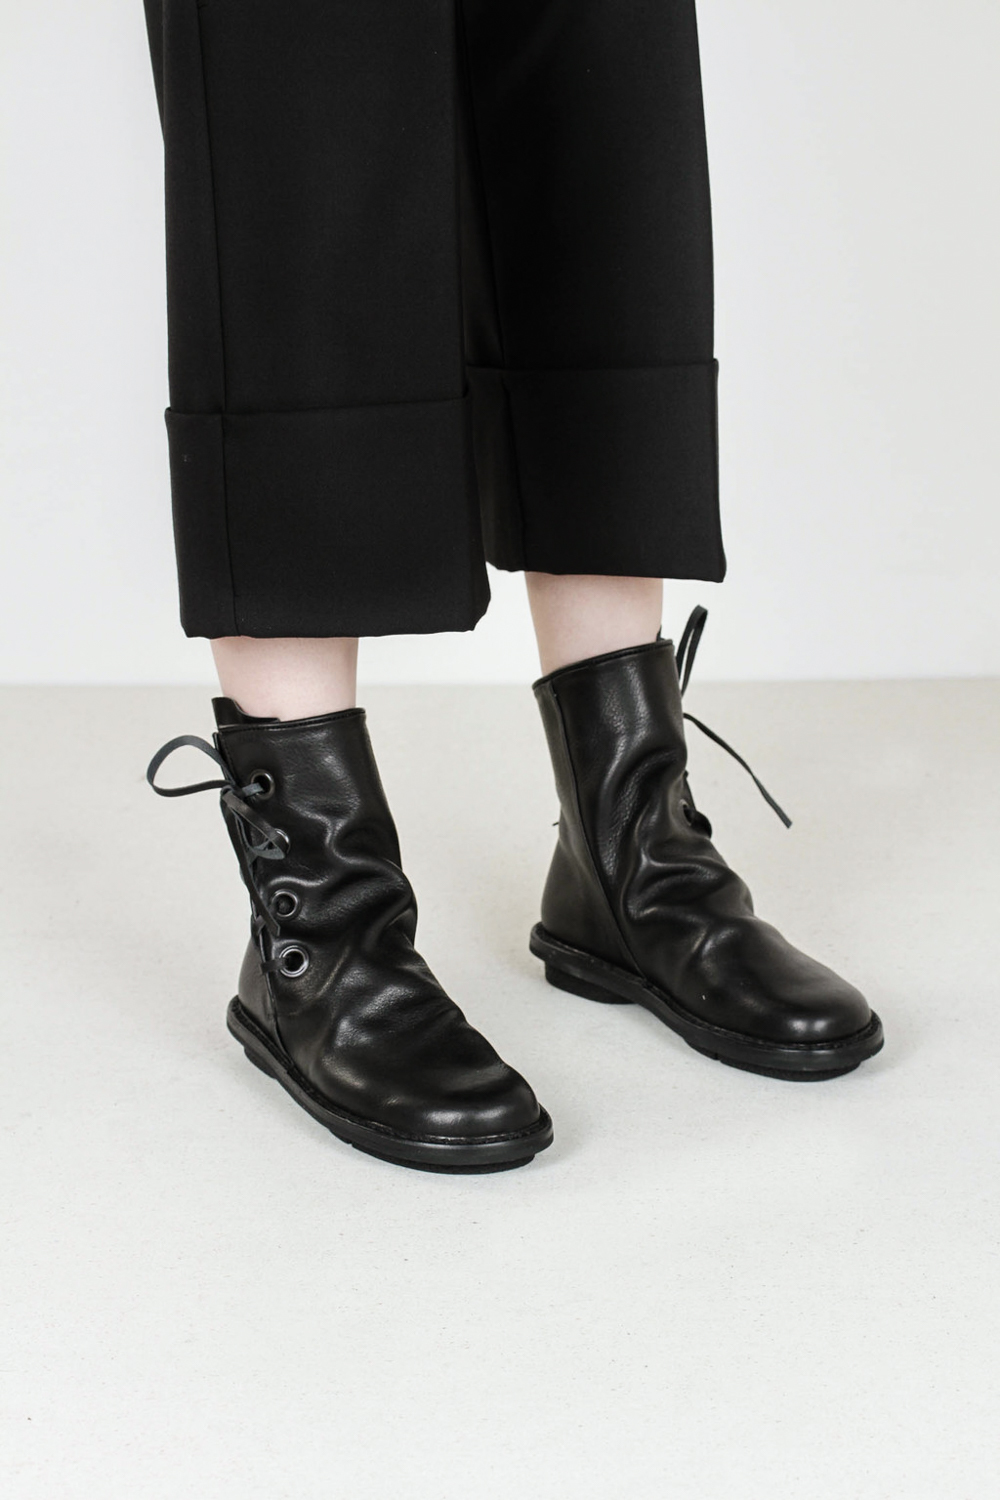 Trippen tramp f waw blk leather shoes